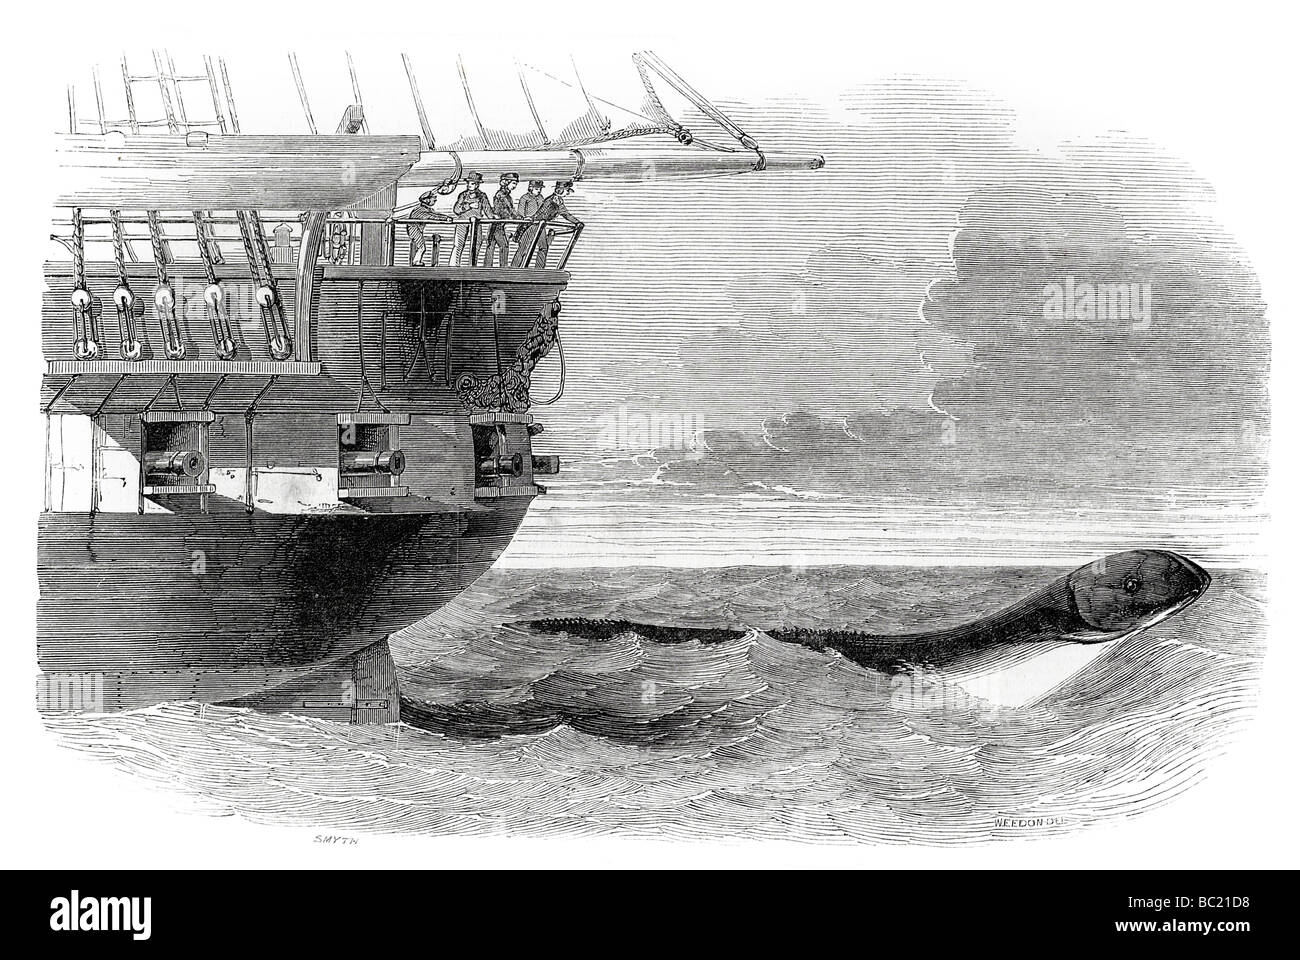 the sea serpent passing under the stern of the daedalus - Stock Image